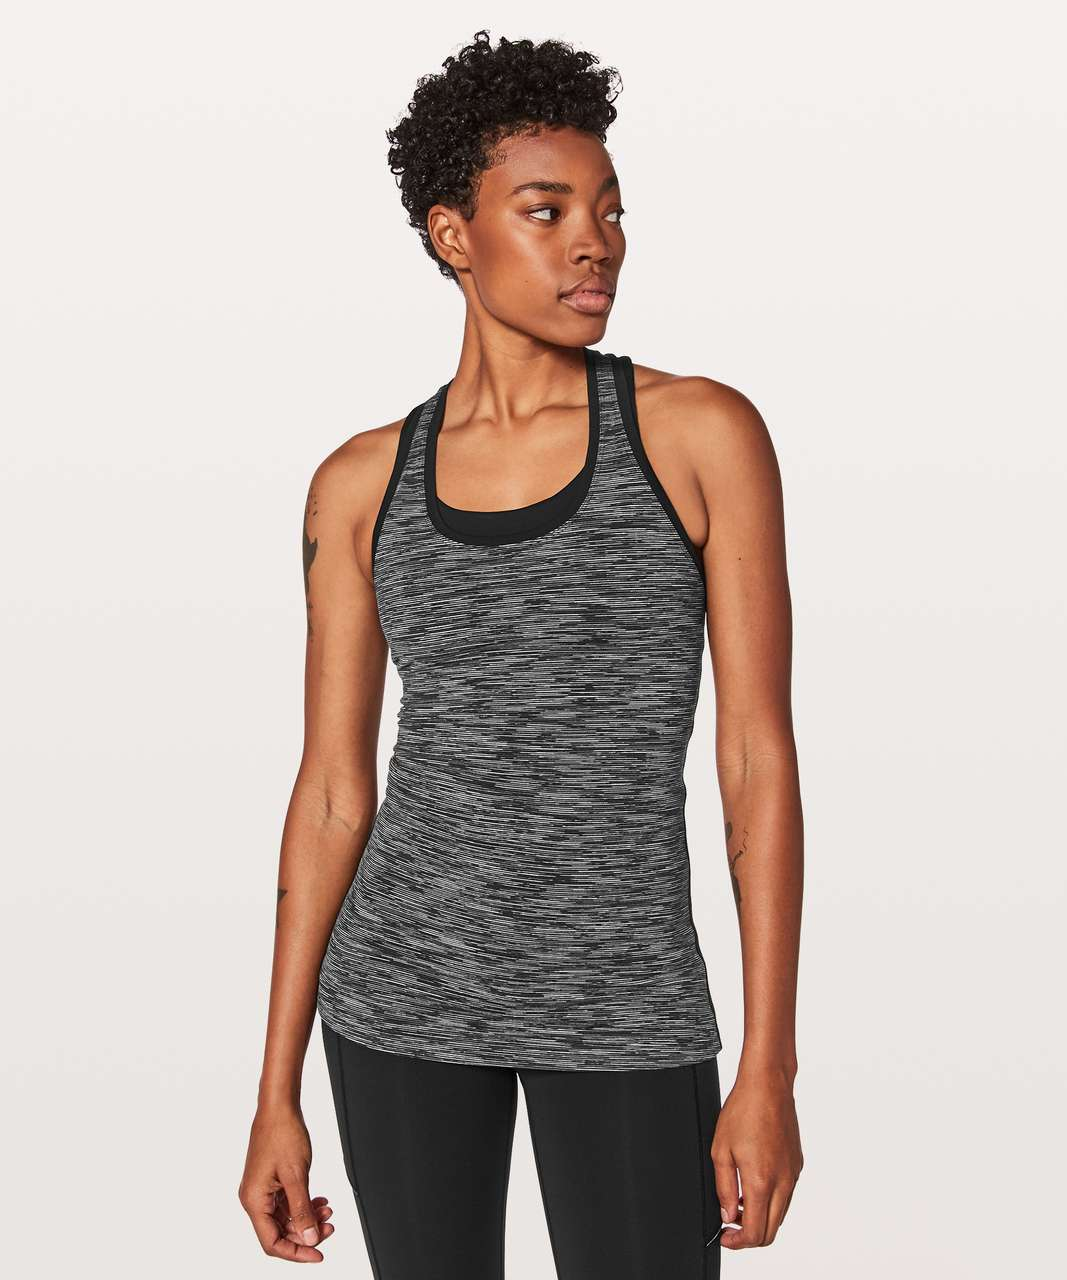 Lululemon Cool Racerback II Lined Up - Wee Are From Space Black Slate / Black